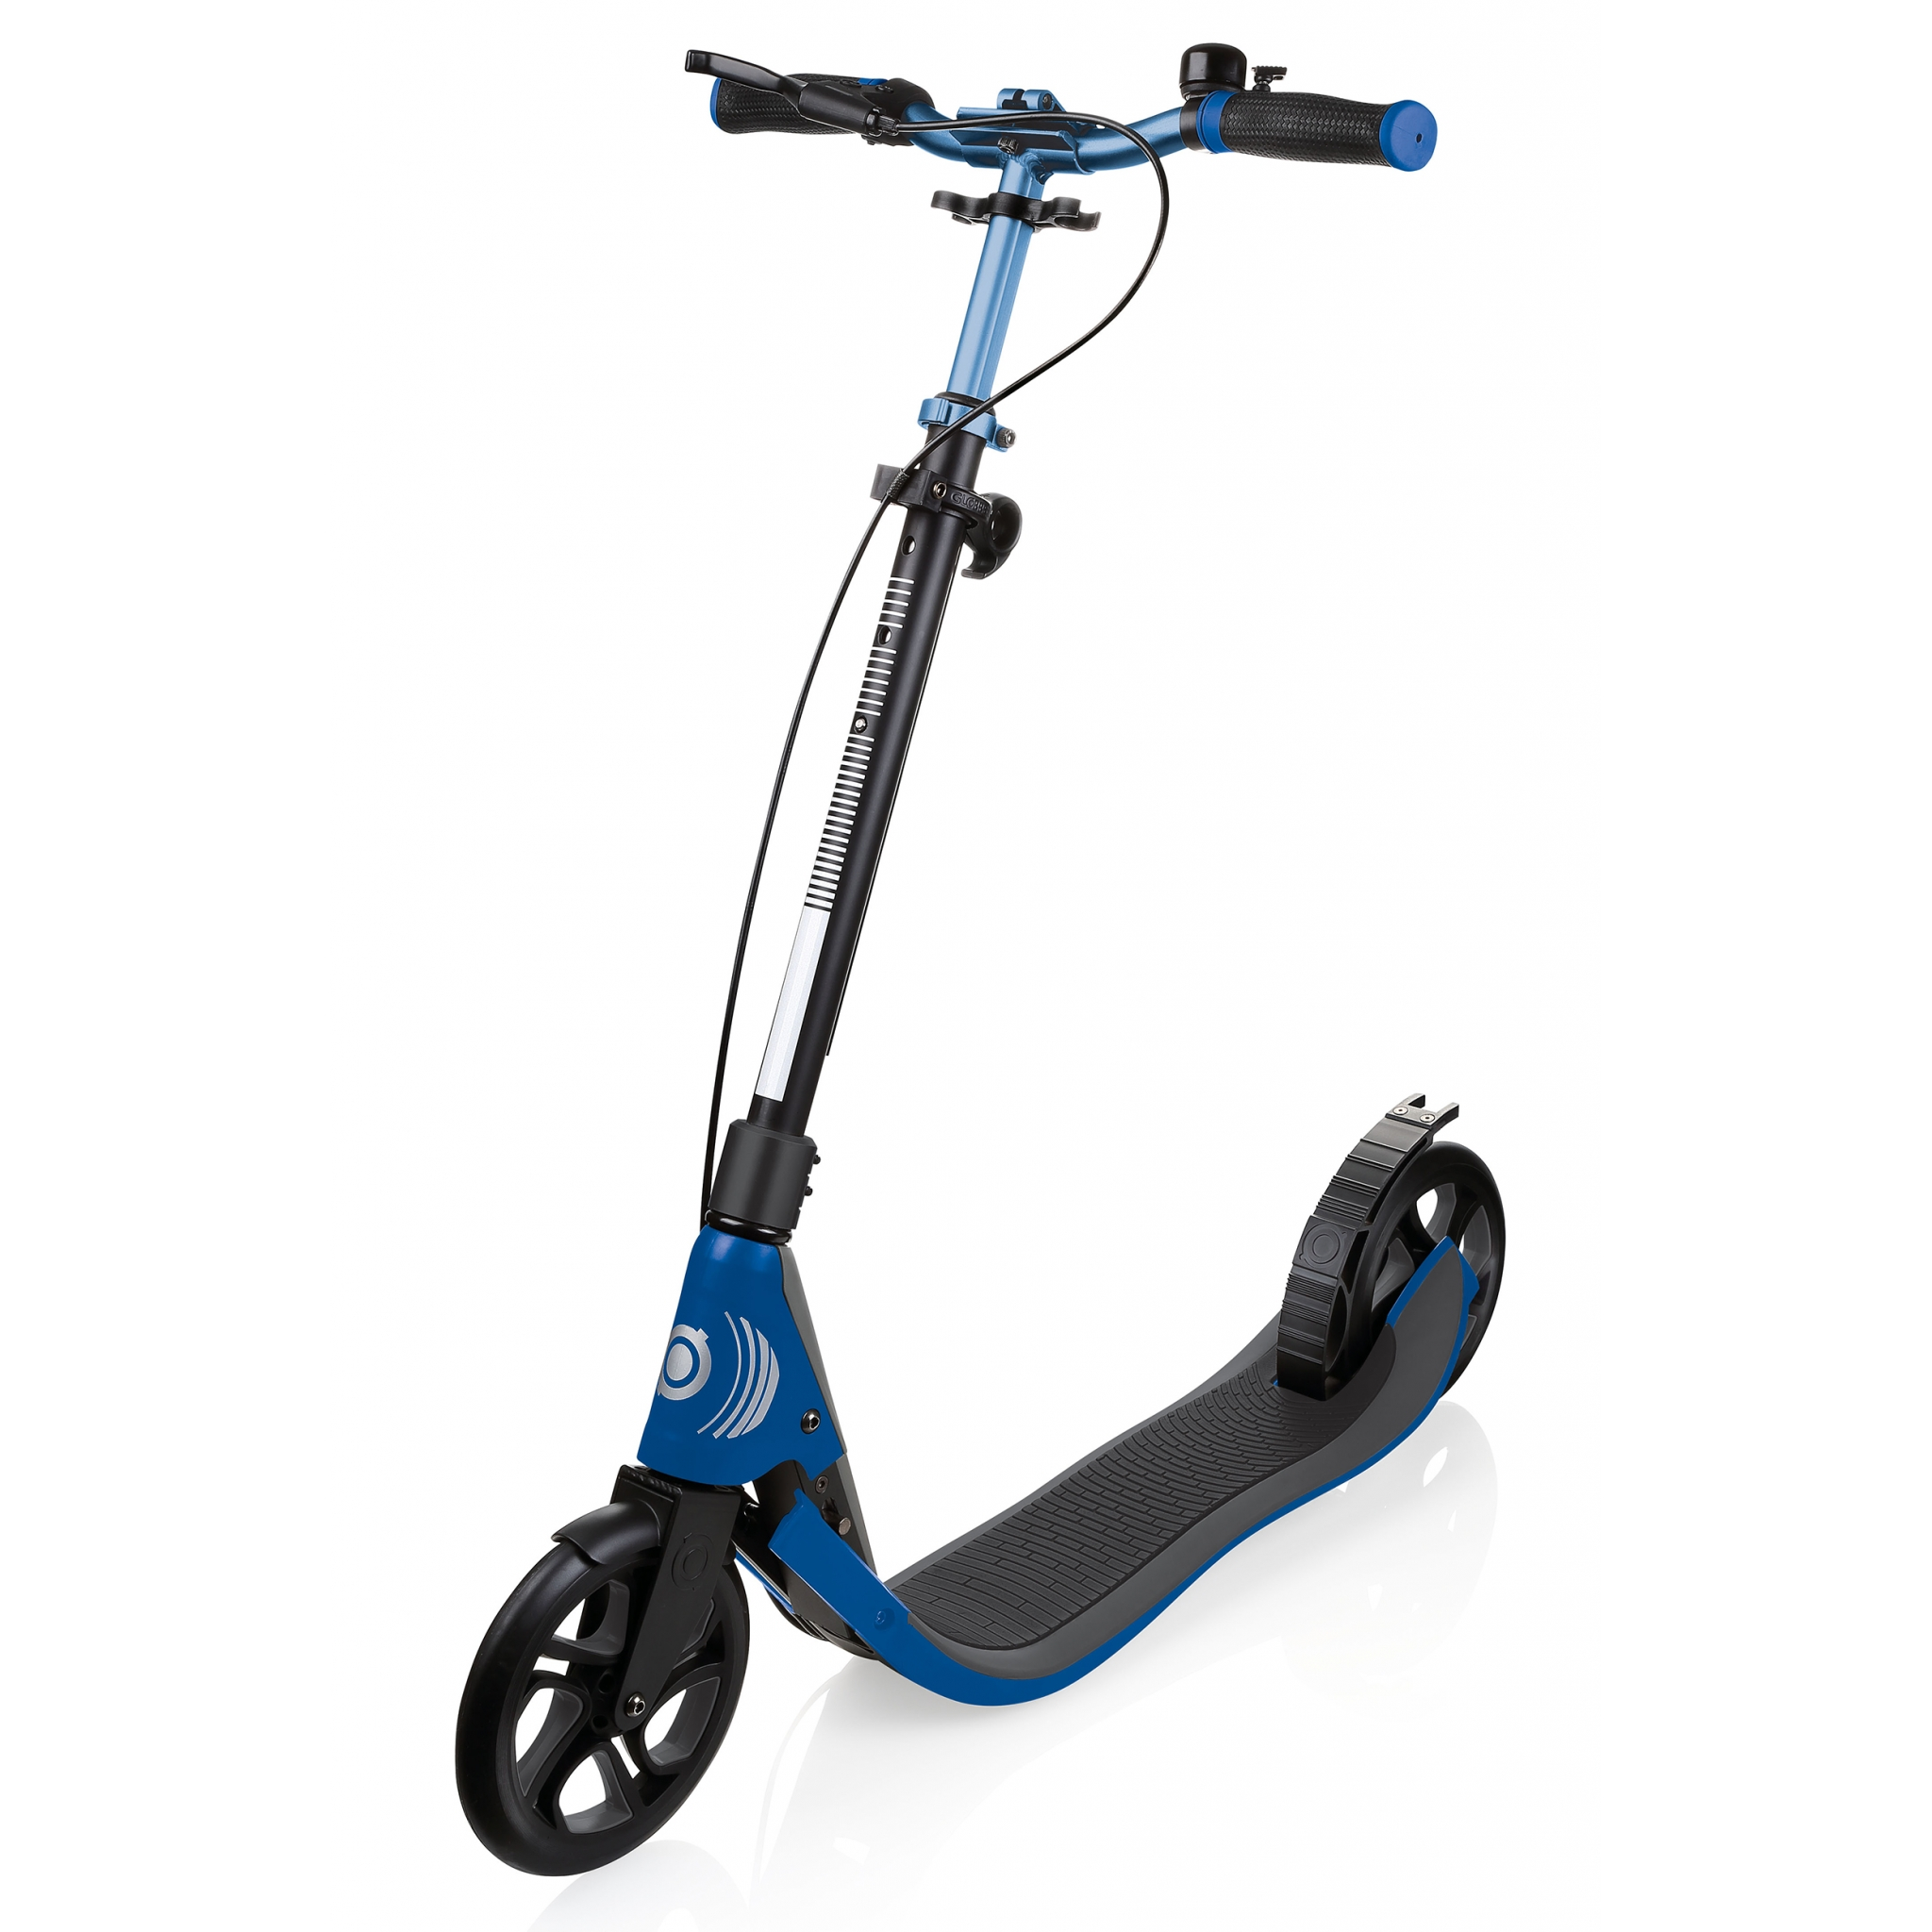 foldable scooter for adults with handbrake - Globber ONE NL 205 DELUXE 1